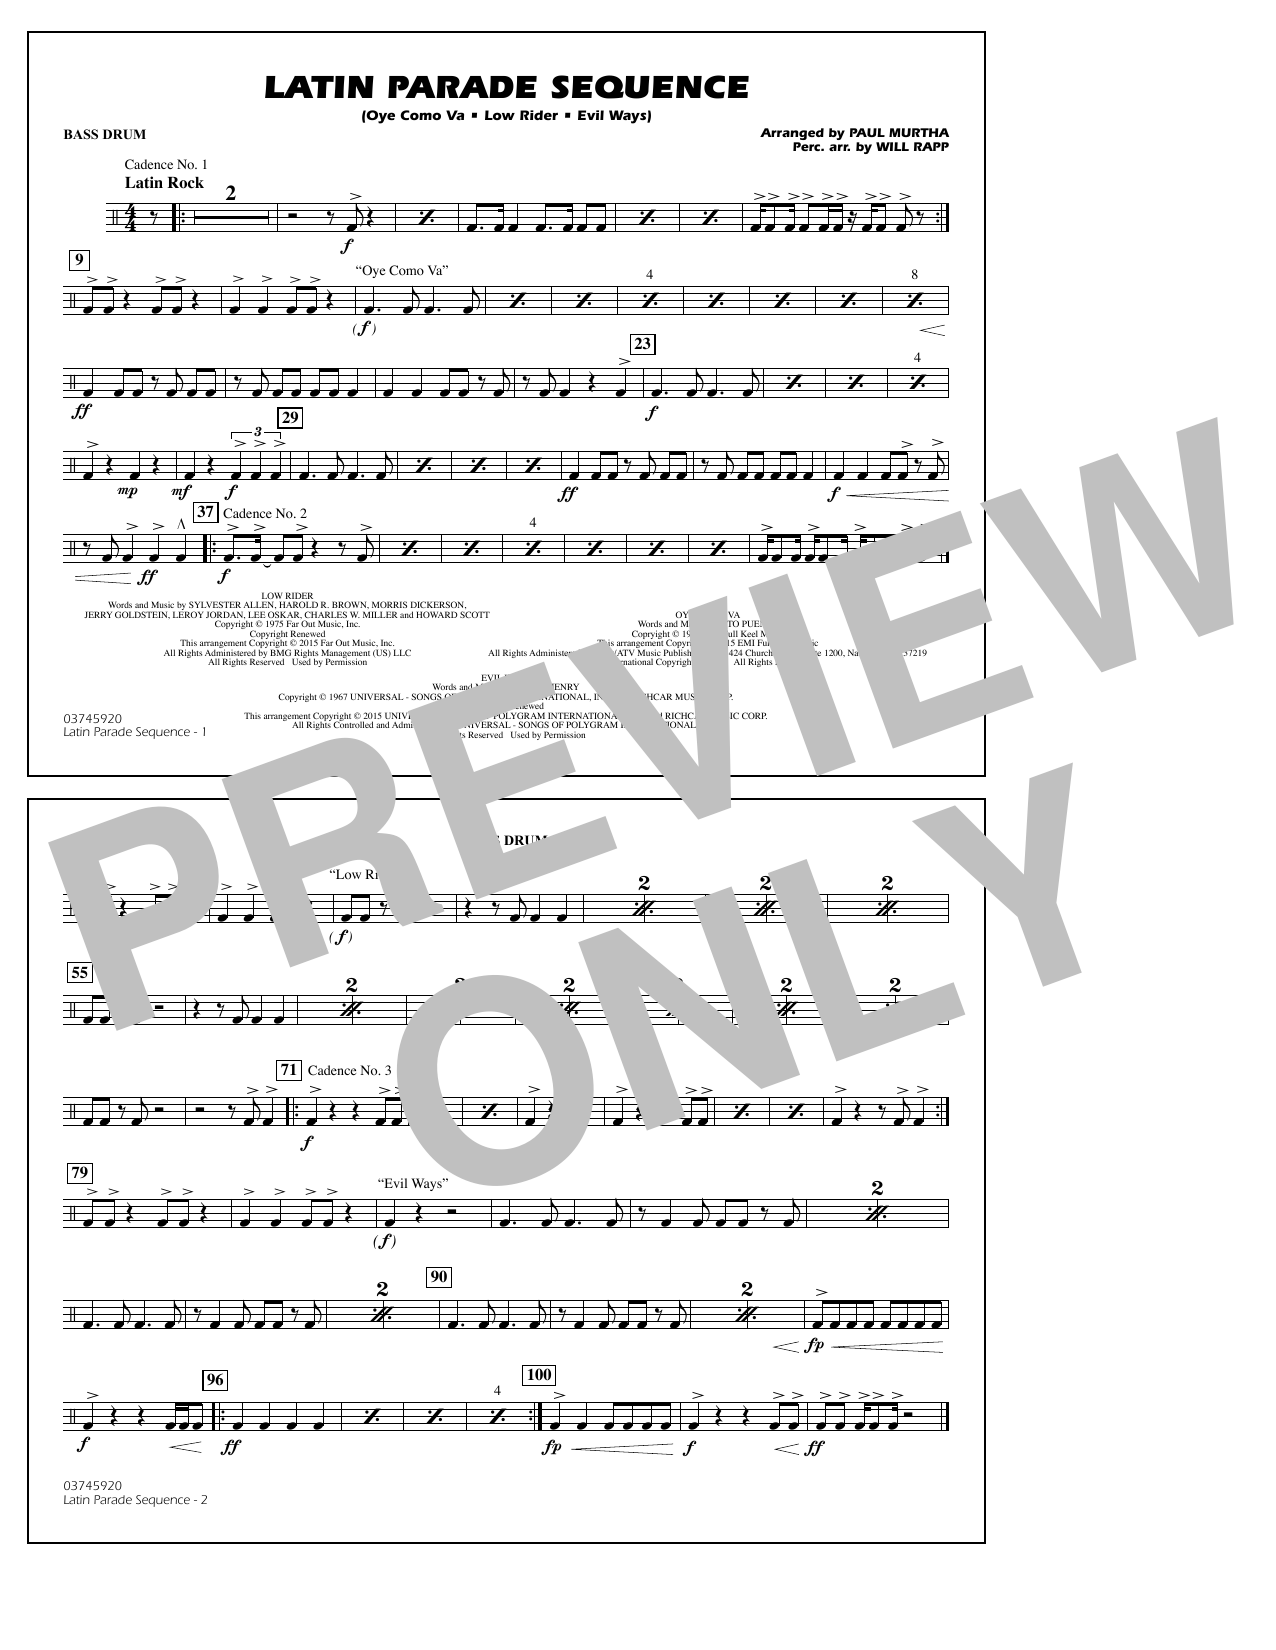 Paul Murtha Latin Parade Sequence - Bass Drum sheet music notes and chords